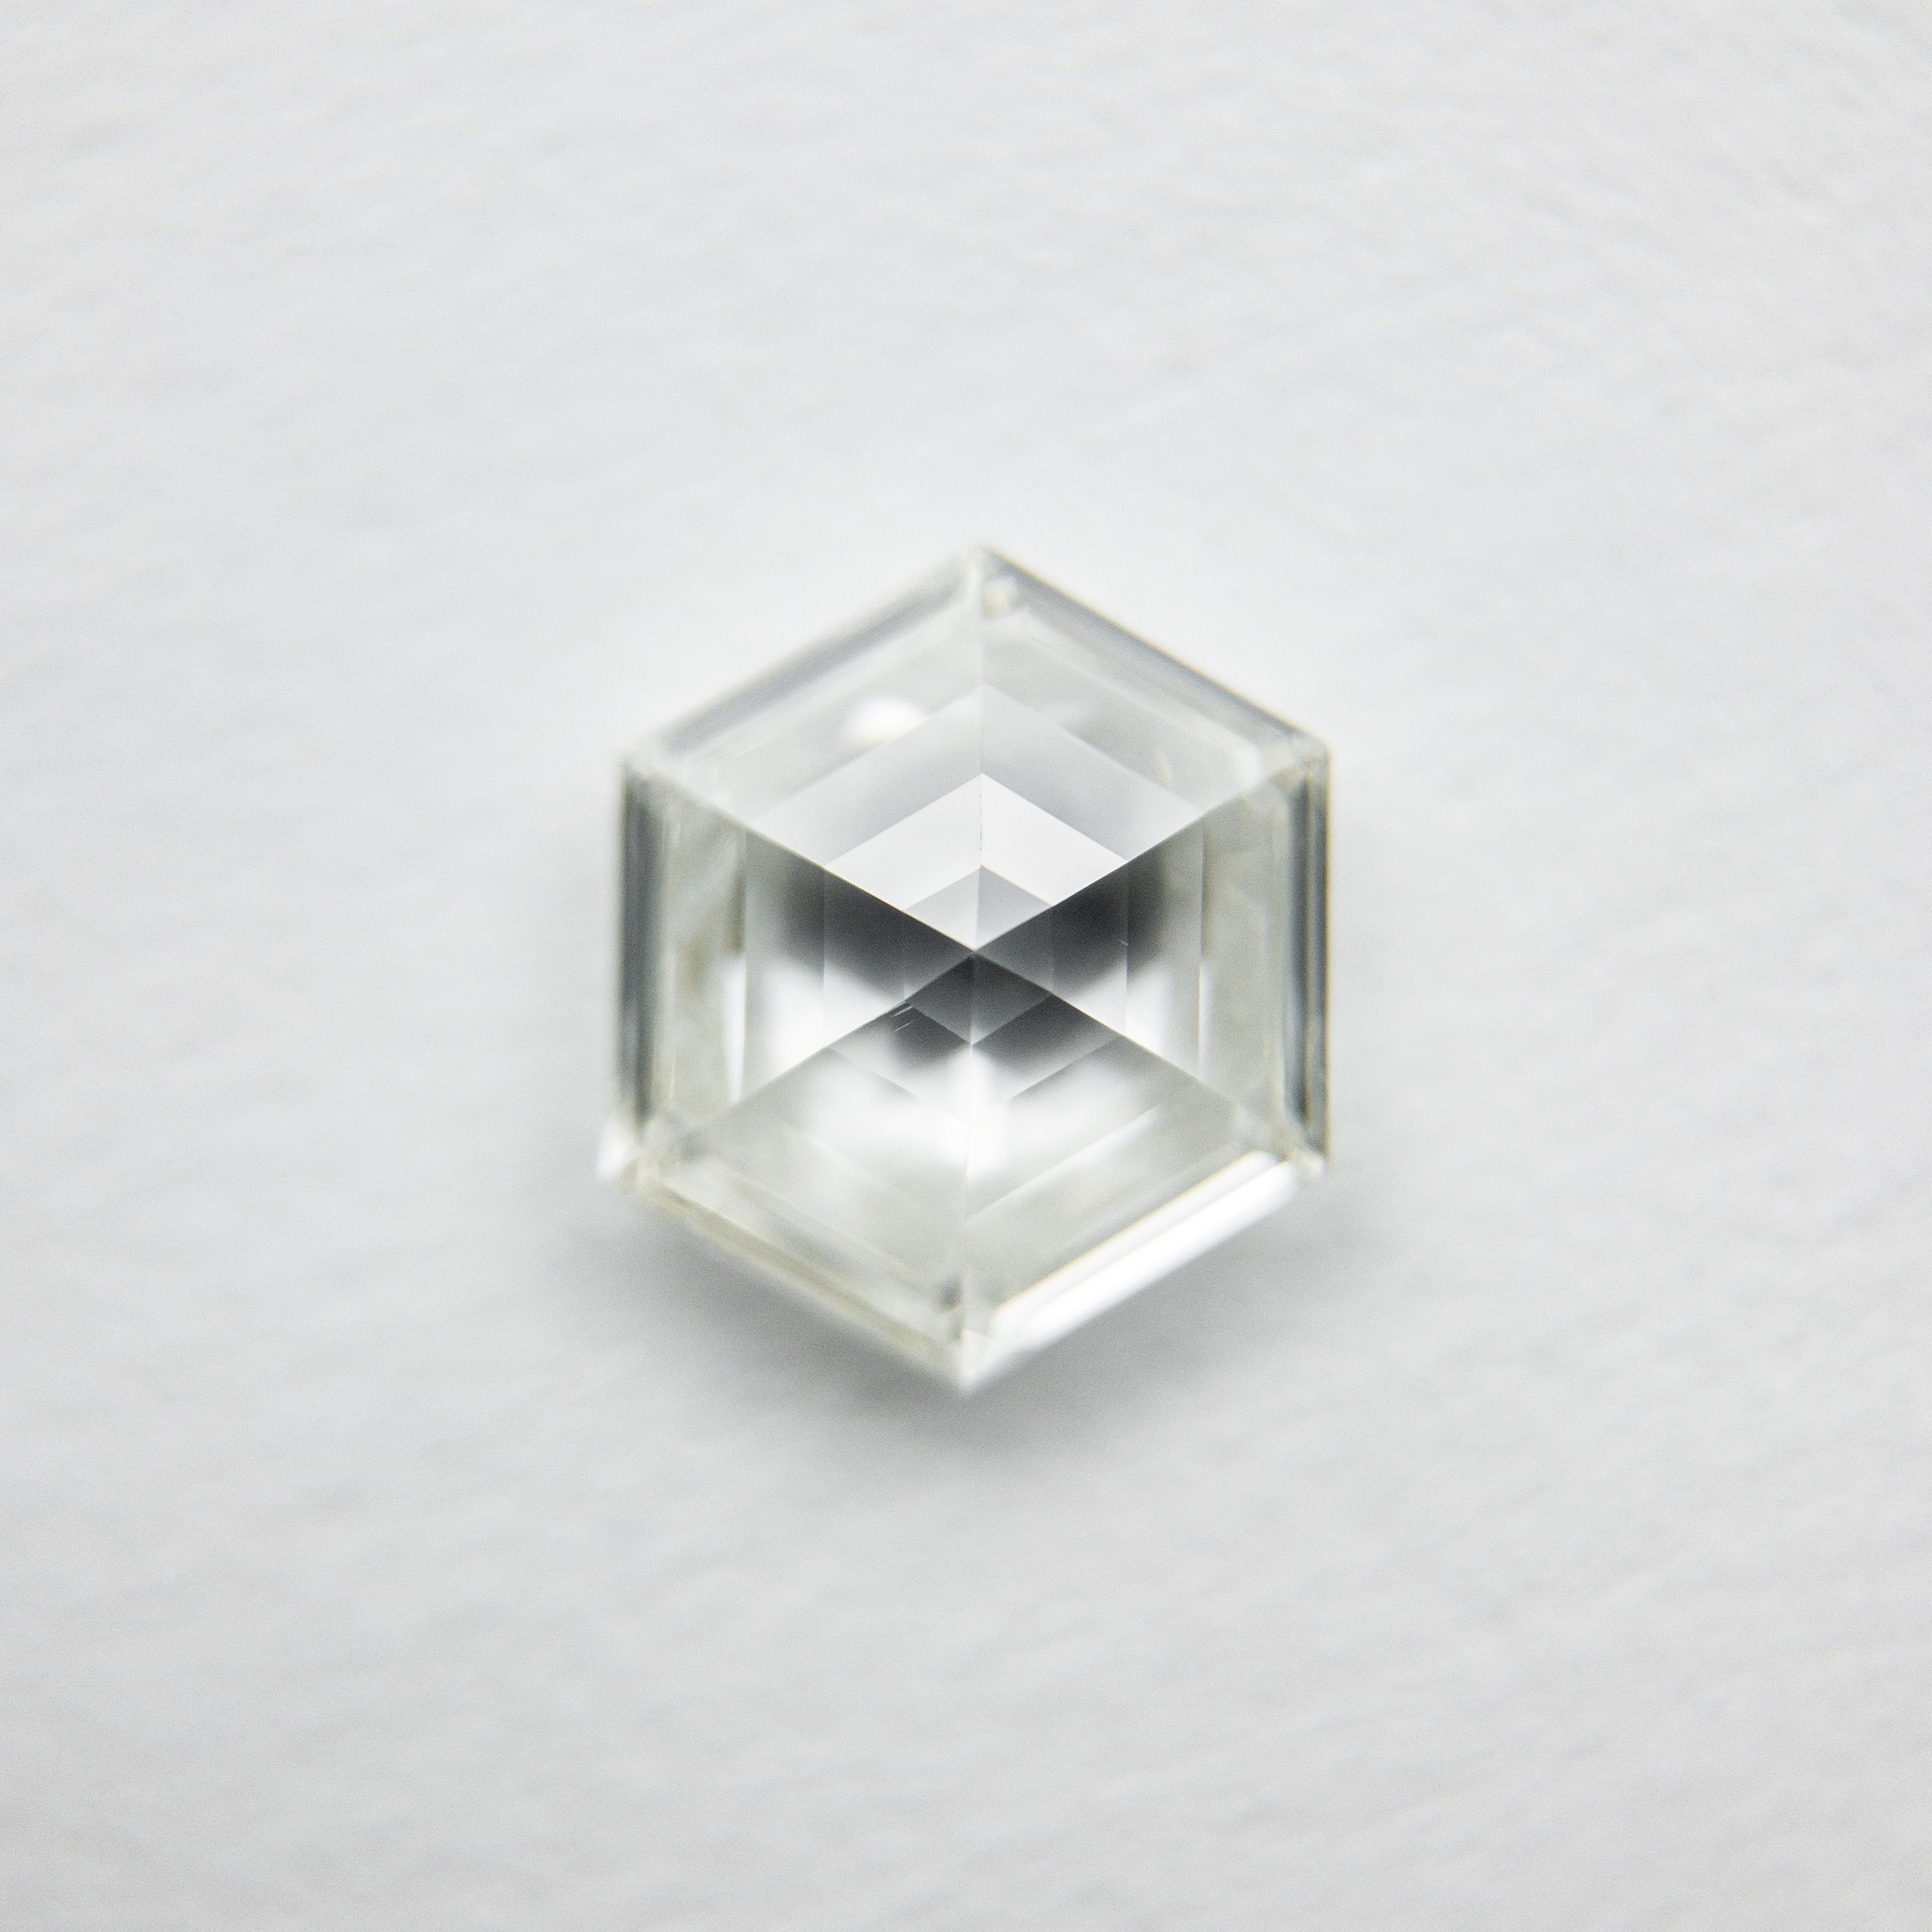 .77 carat Natural Diamond Clear White Hexagon Geometric Diamond for custom work - Inventory code HEXWC77 - Salt & Pepper Celestial Diamond Engagement Rings and Wedding Bands  by Midwinter Co.